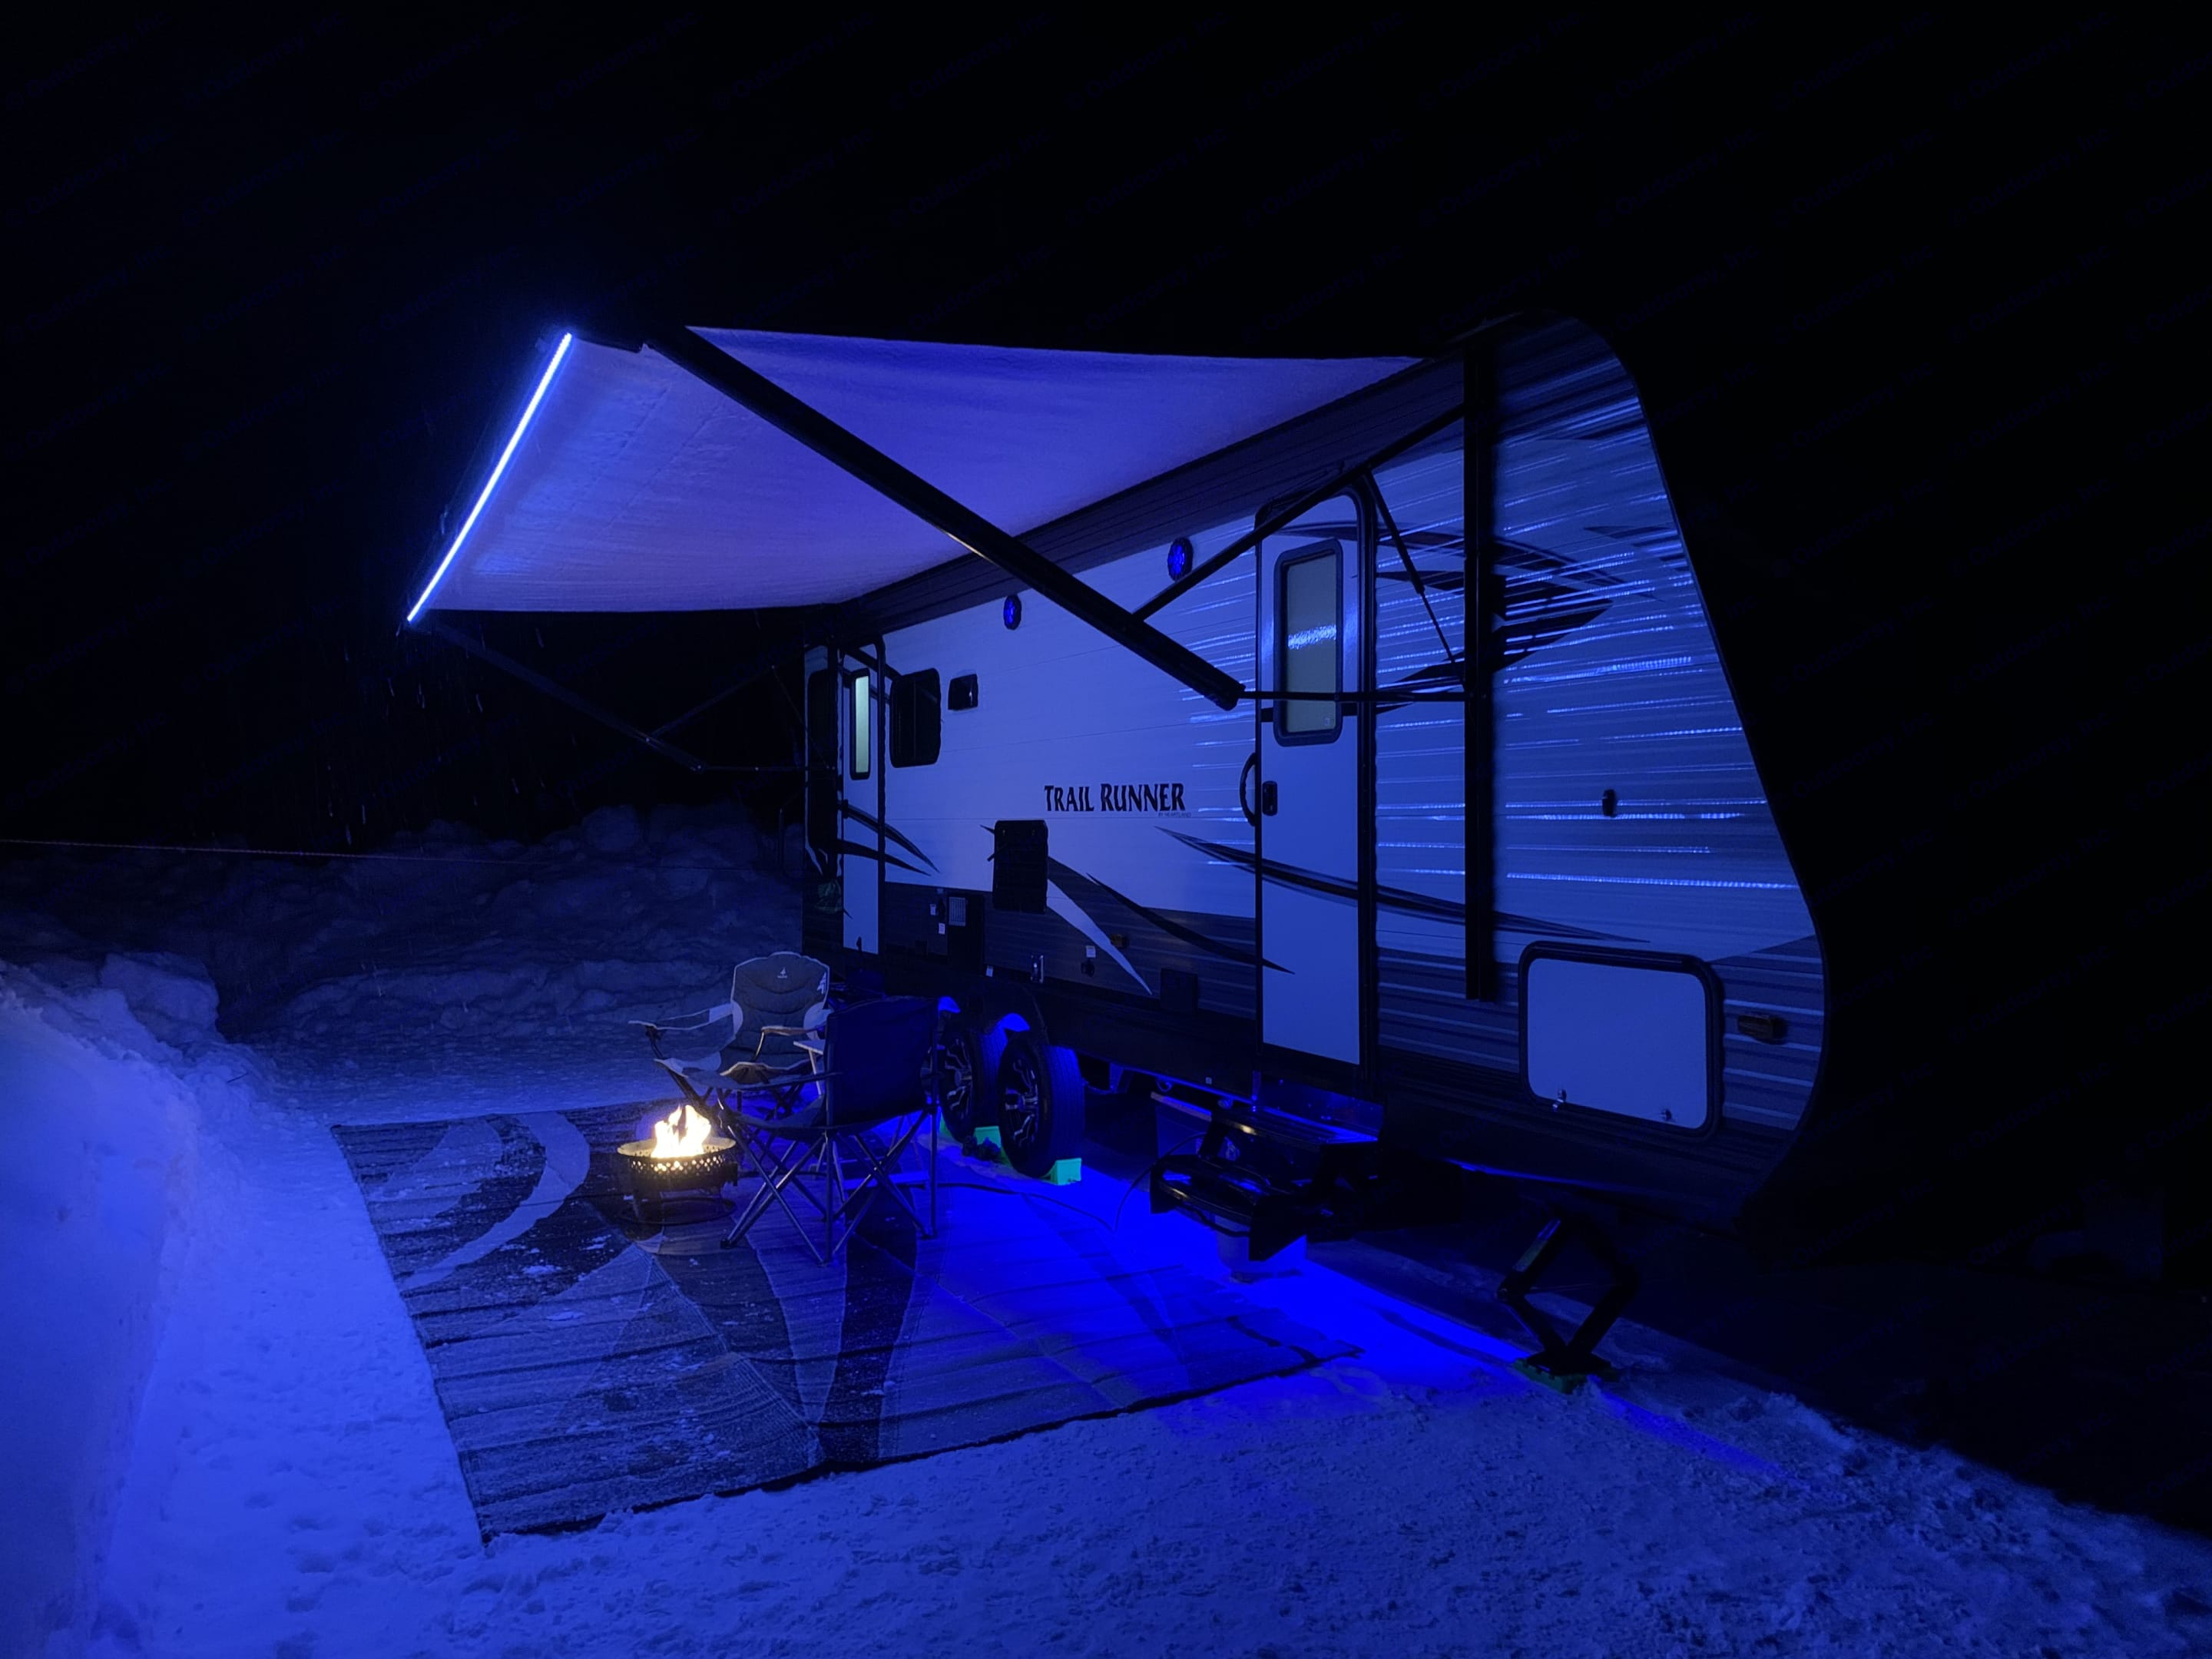 Features white LED lights along the awning and blue LED lights along the bottom of the trailer.. Heartland Trail Runner 2019